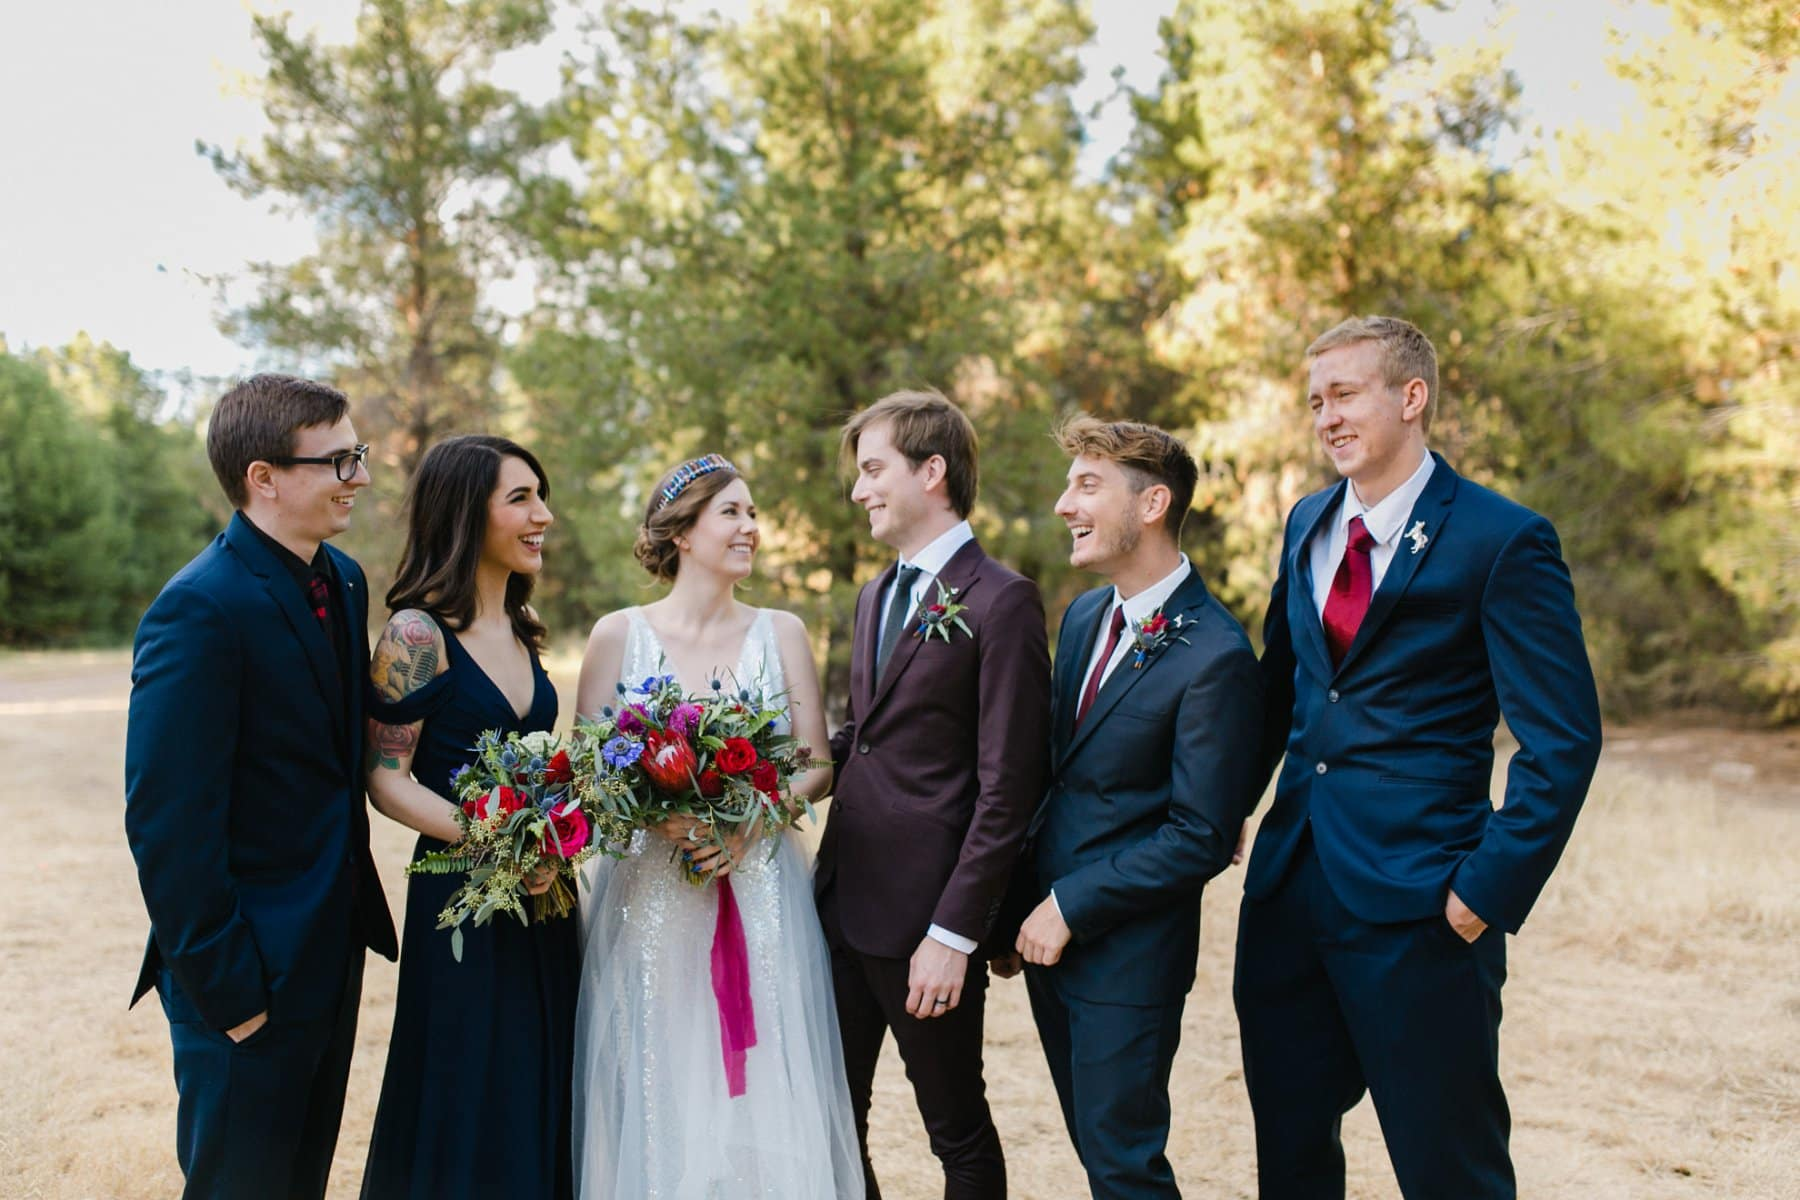 wedding party at the Meadows Schnepf Farms pine tree forest venue